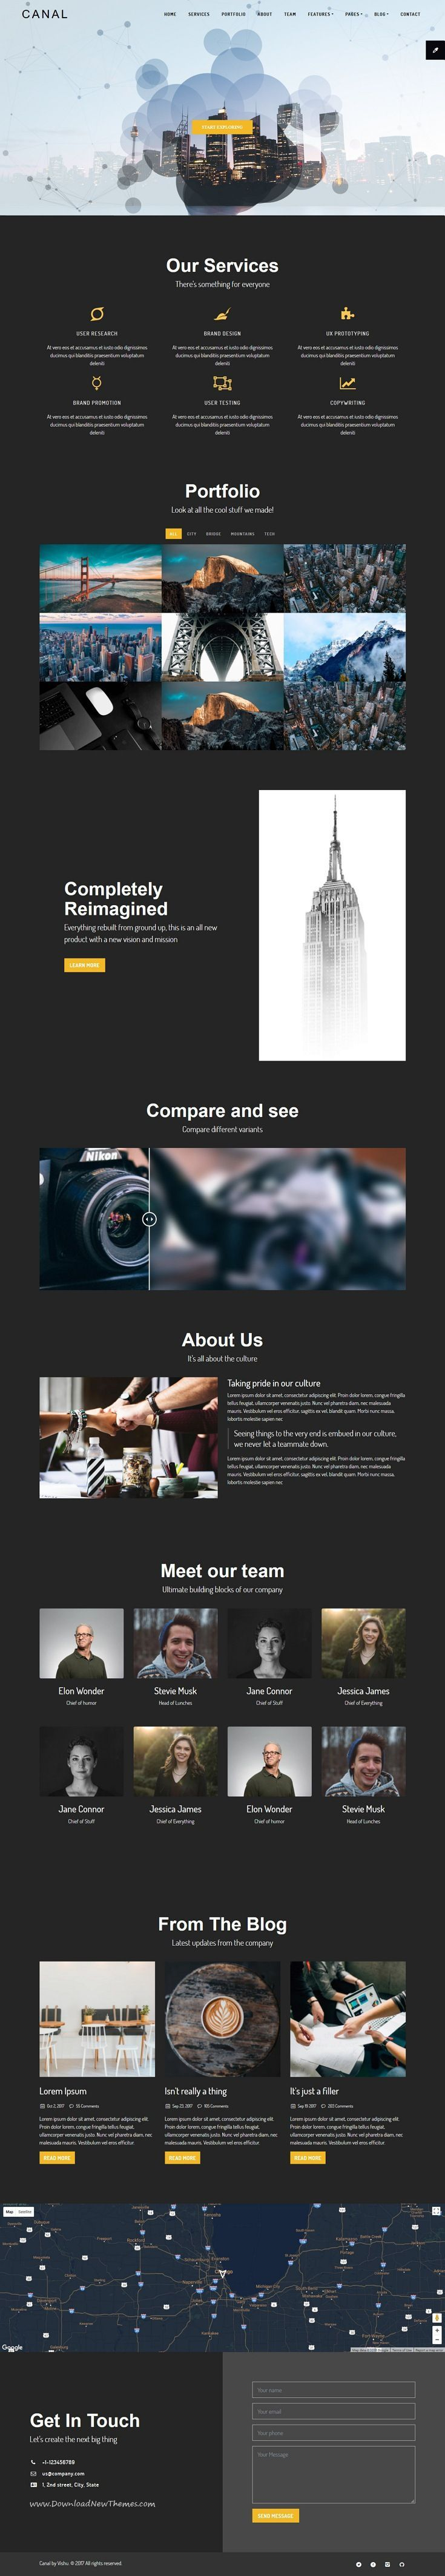 Canal is clean and modern design 3in1 responsive bootstrap #HTML5 ...